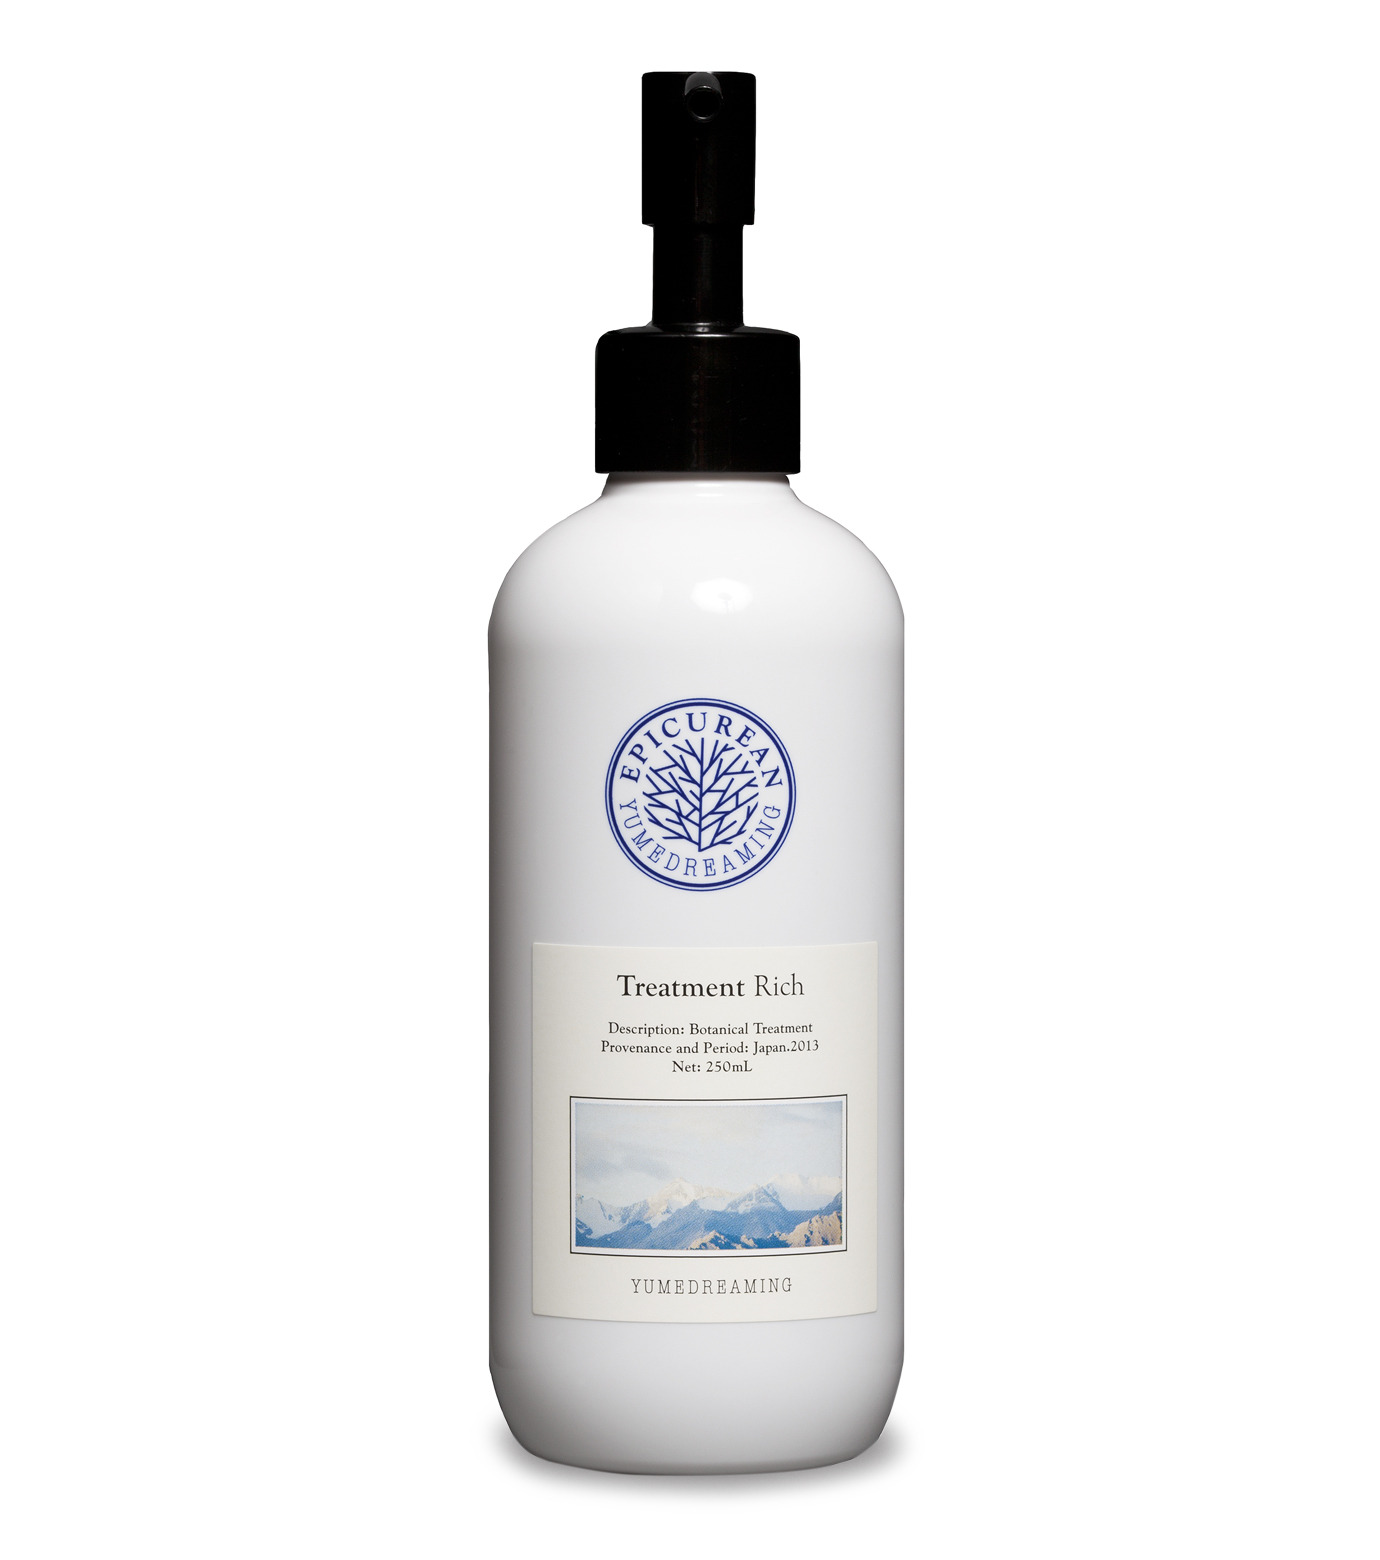 Yumedreaming Epicurean(ユメドリーミン エピキュリアン)のTreatment Rich 250ml-WHITE(HAIR-CARE/HAIR-CARE)-ETRR-4 拡大詳細画像1